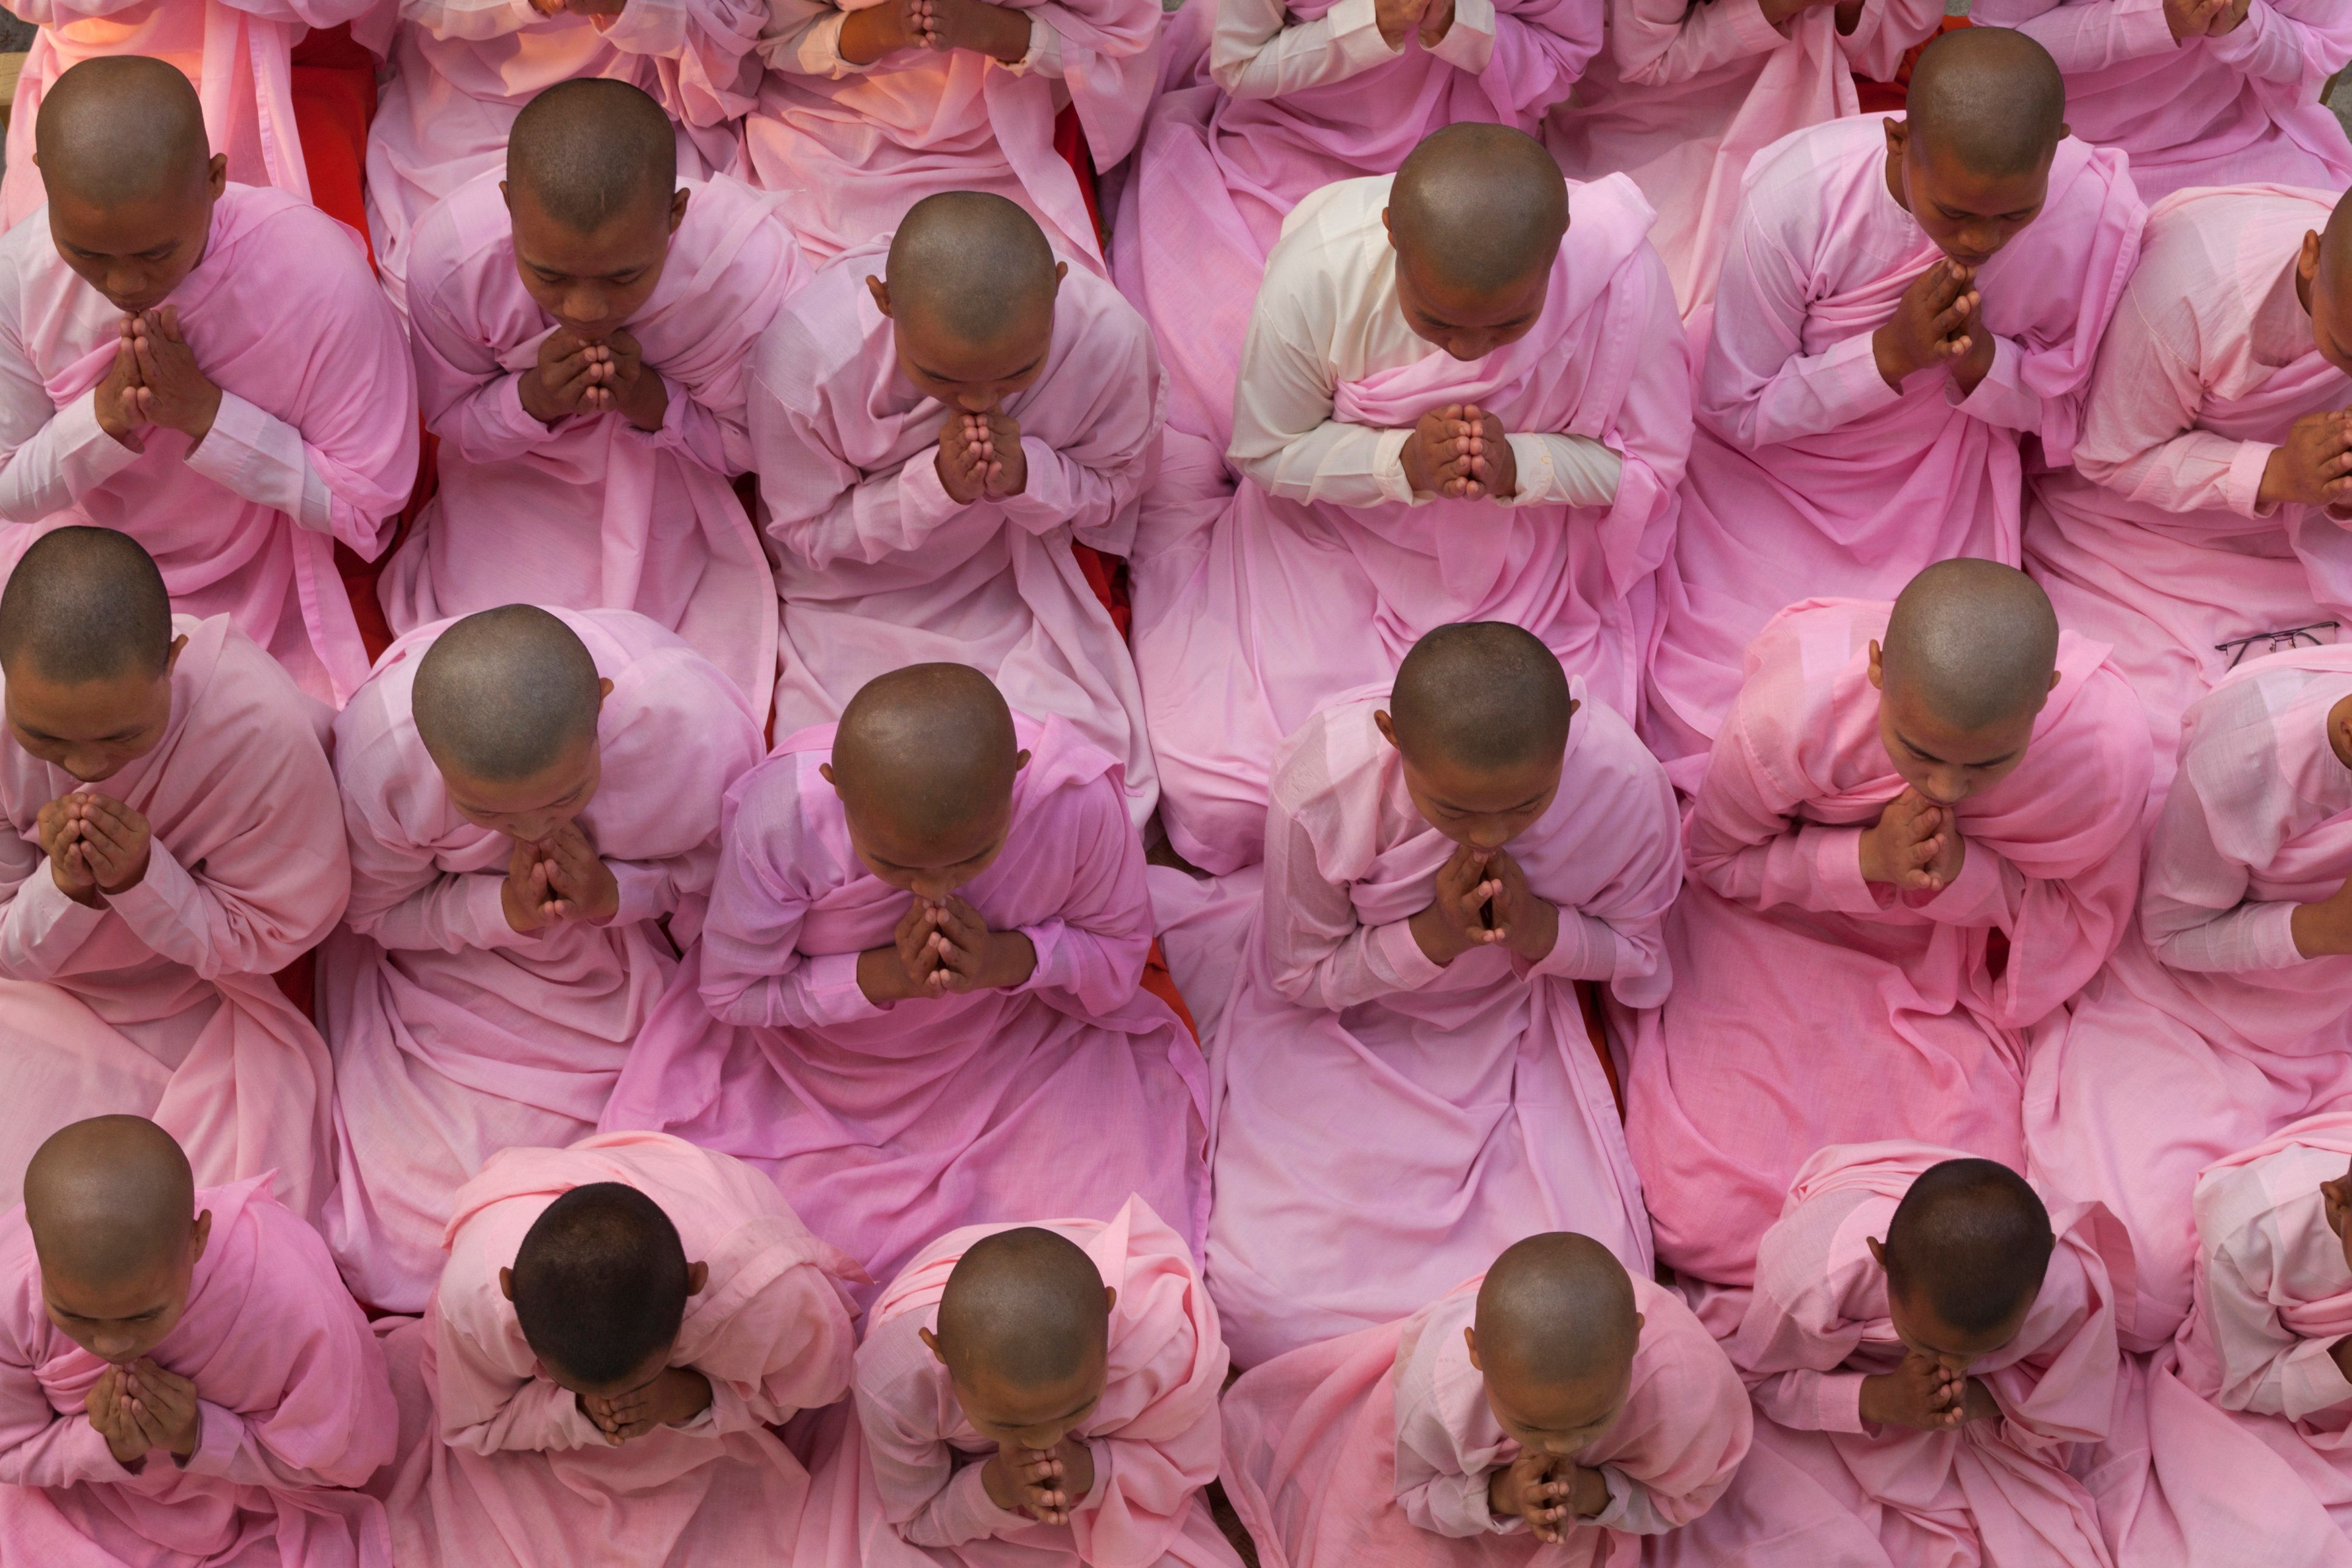 Buddhism in Burma (also known as Myanmar) is predominantly of the Theravada tradition, practiced by 89% of the country's population.